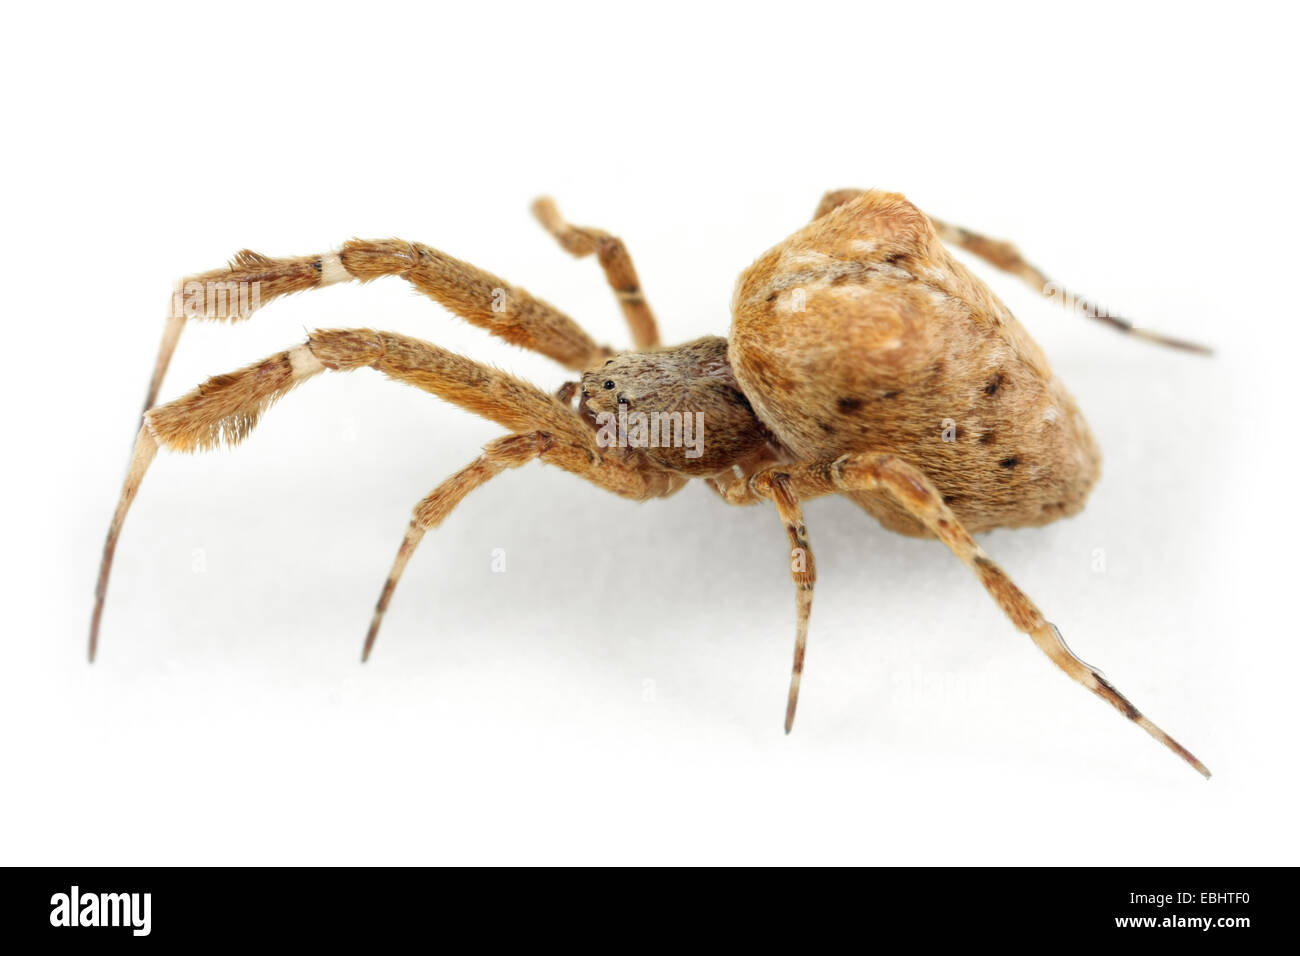 Female Hothouse Featherleg spider, Uloborus plumipes, on white background. Part of the family Uloboridae - Cribellate - Stock Image